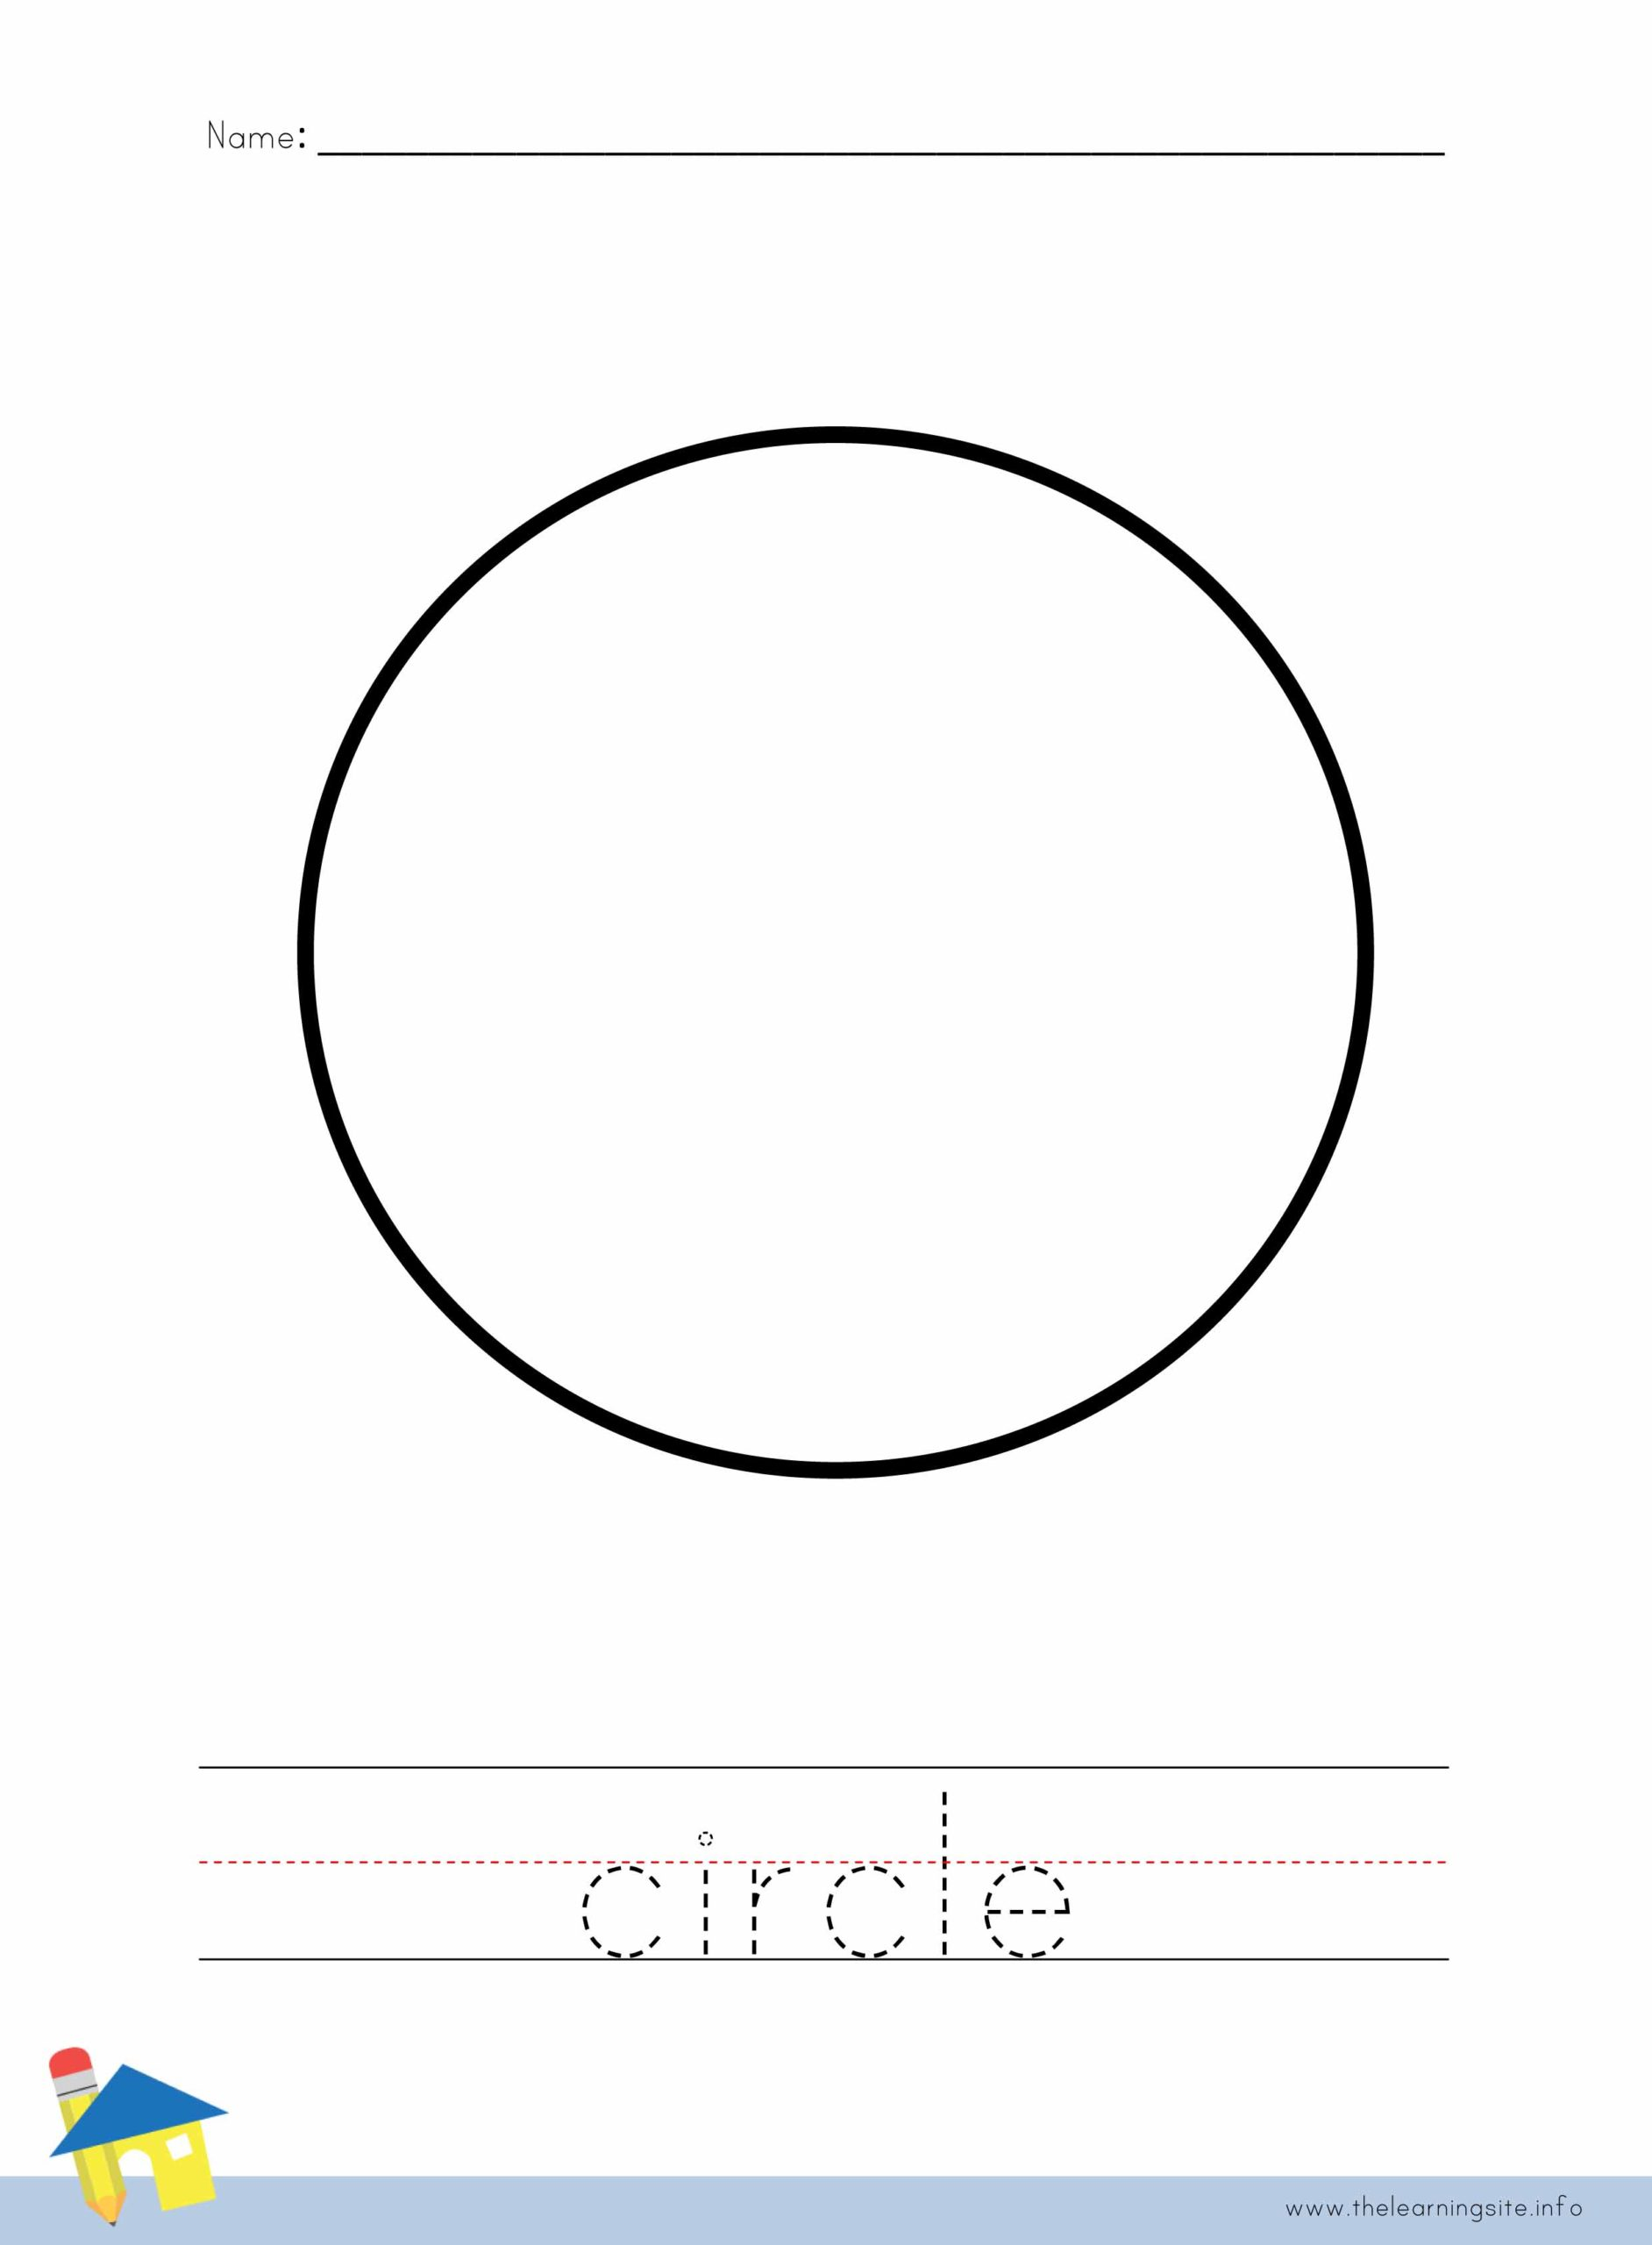 Circle Coloring Worksheet The Learning Site